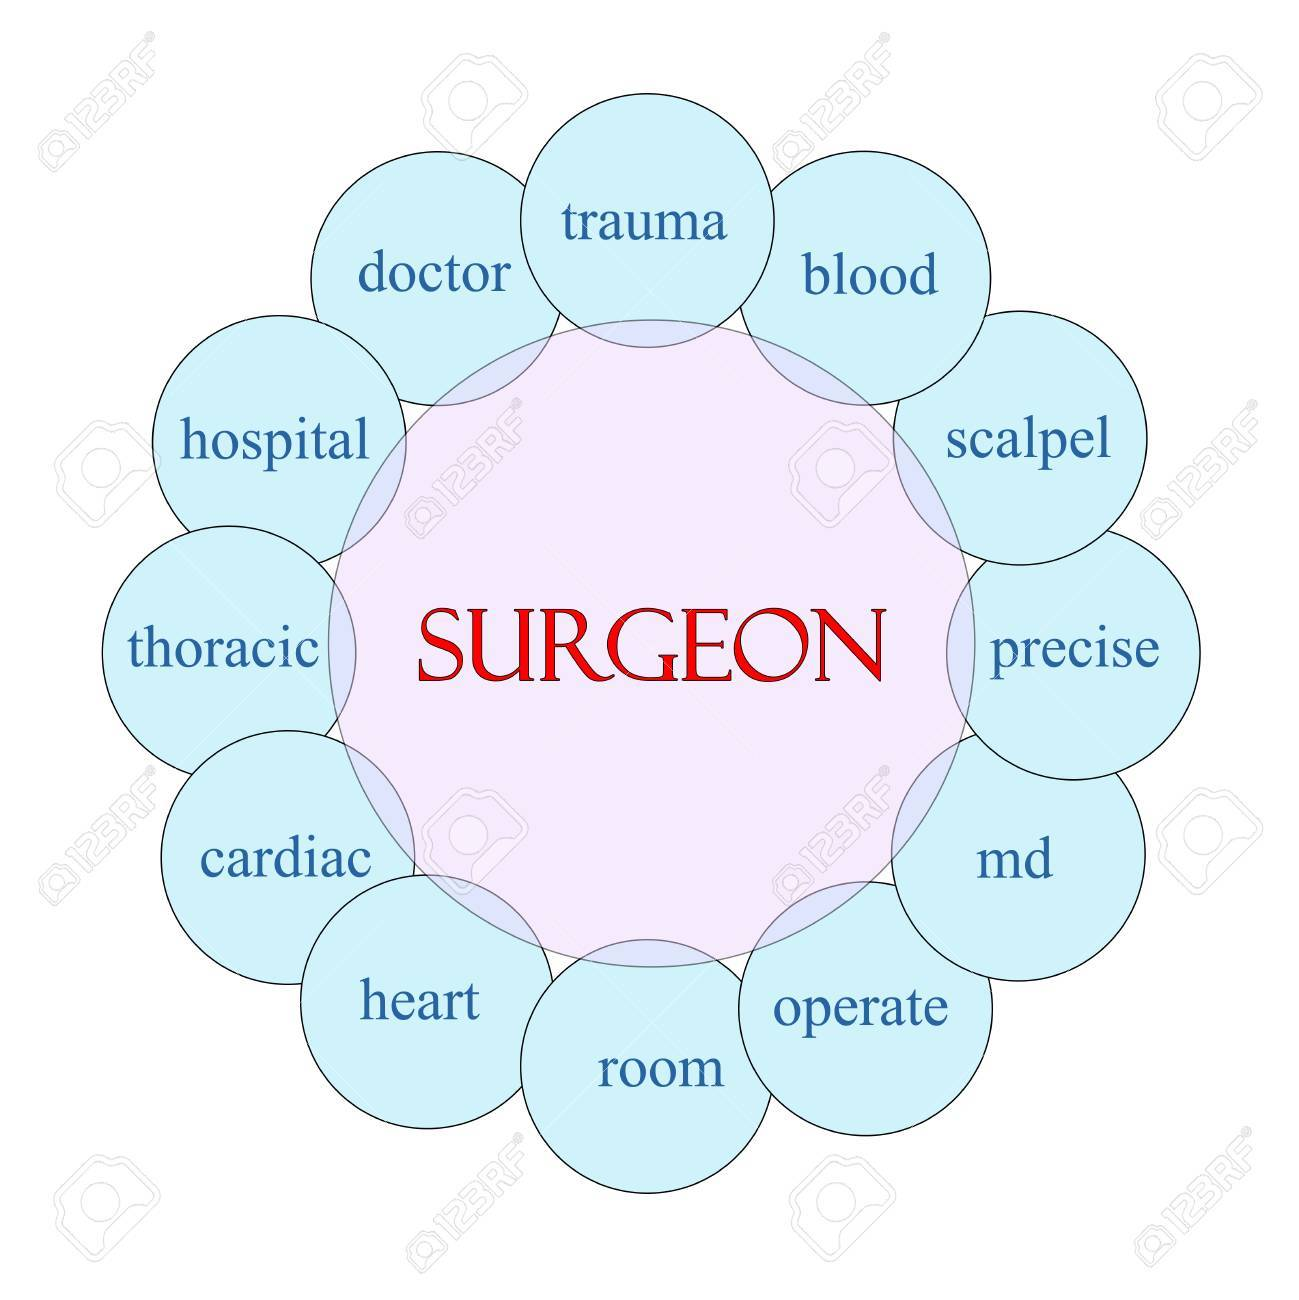 hight resolution of stock photo surgeon concept circular diagram in pink and blue with great terms such as doctor trauma blood scalpel md and more